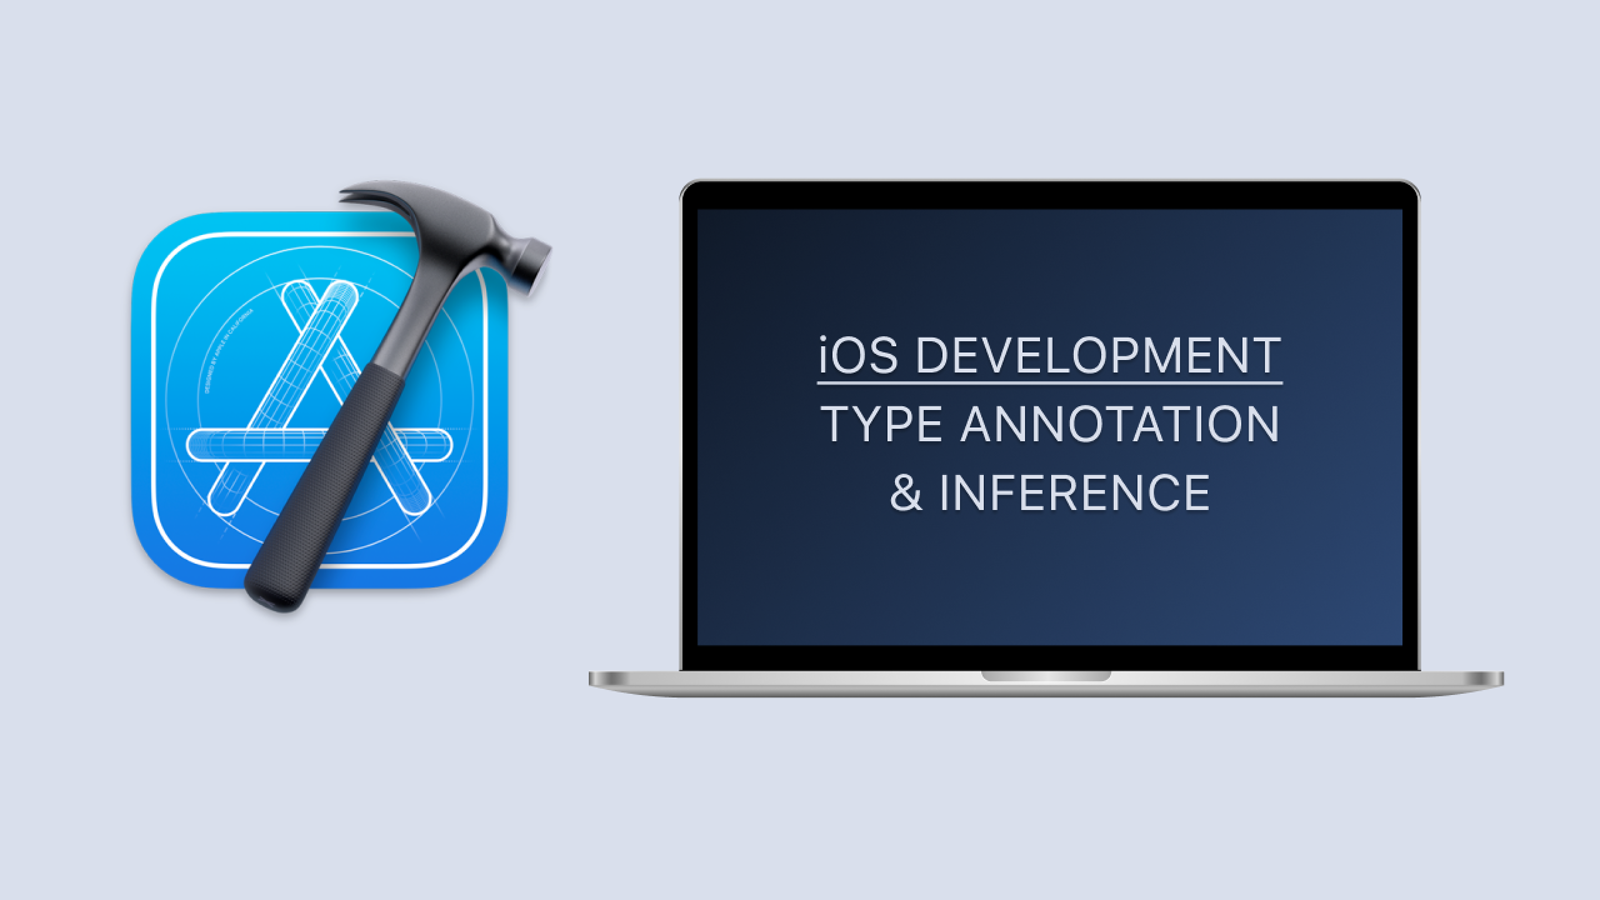 iOS Development #7: Type Annotation & Inference